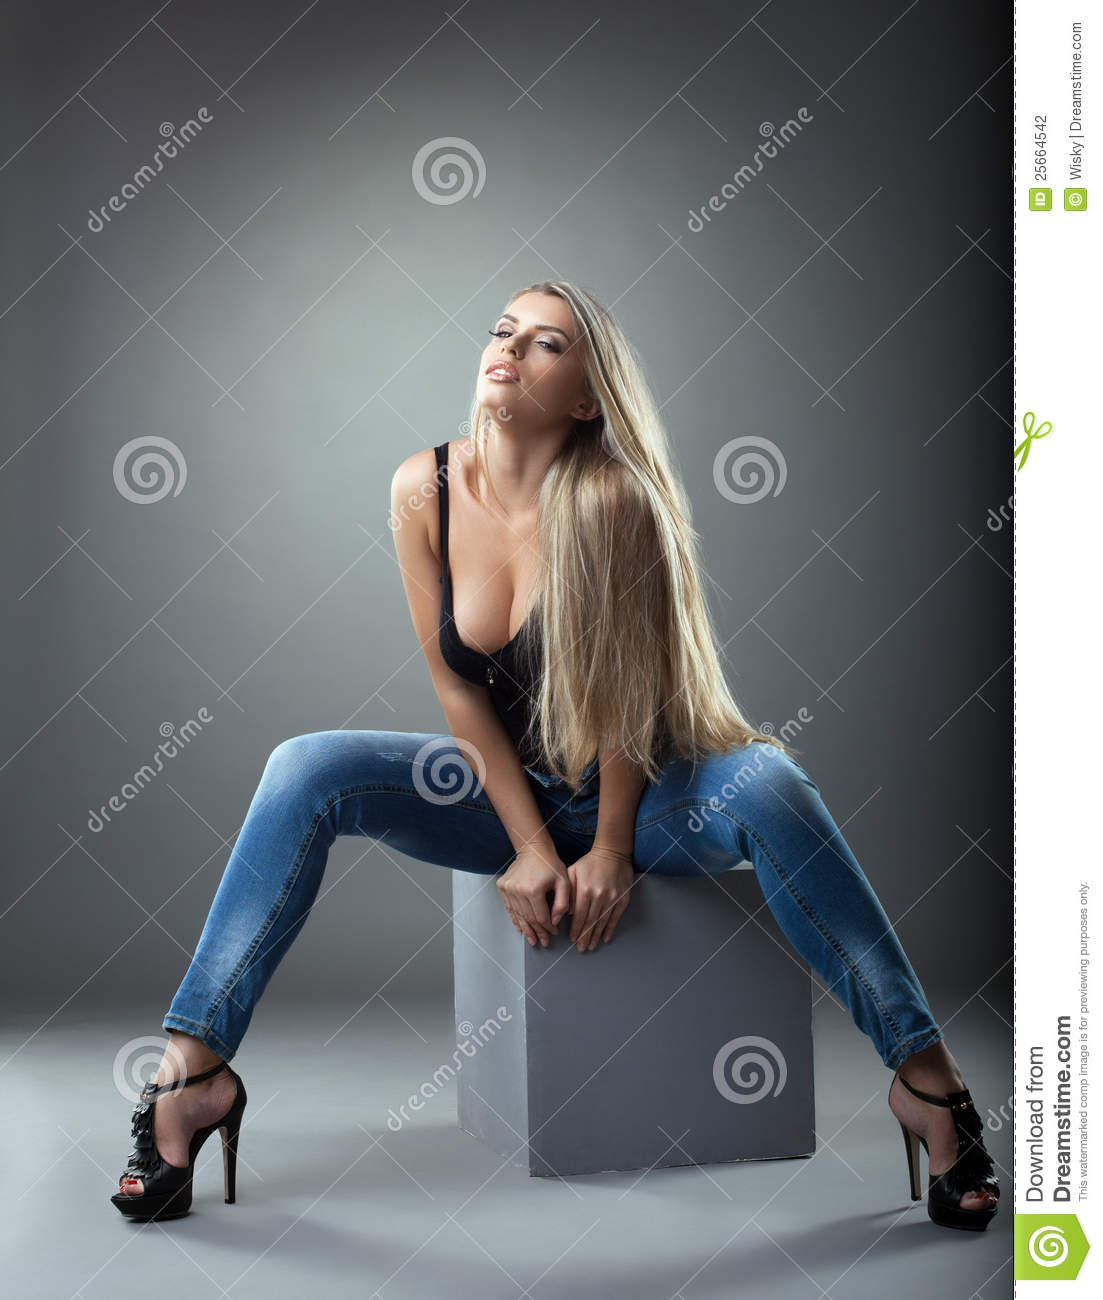 Beautiful Girl In Jeans Posing On Cube Stock Photography